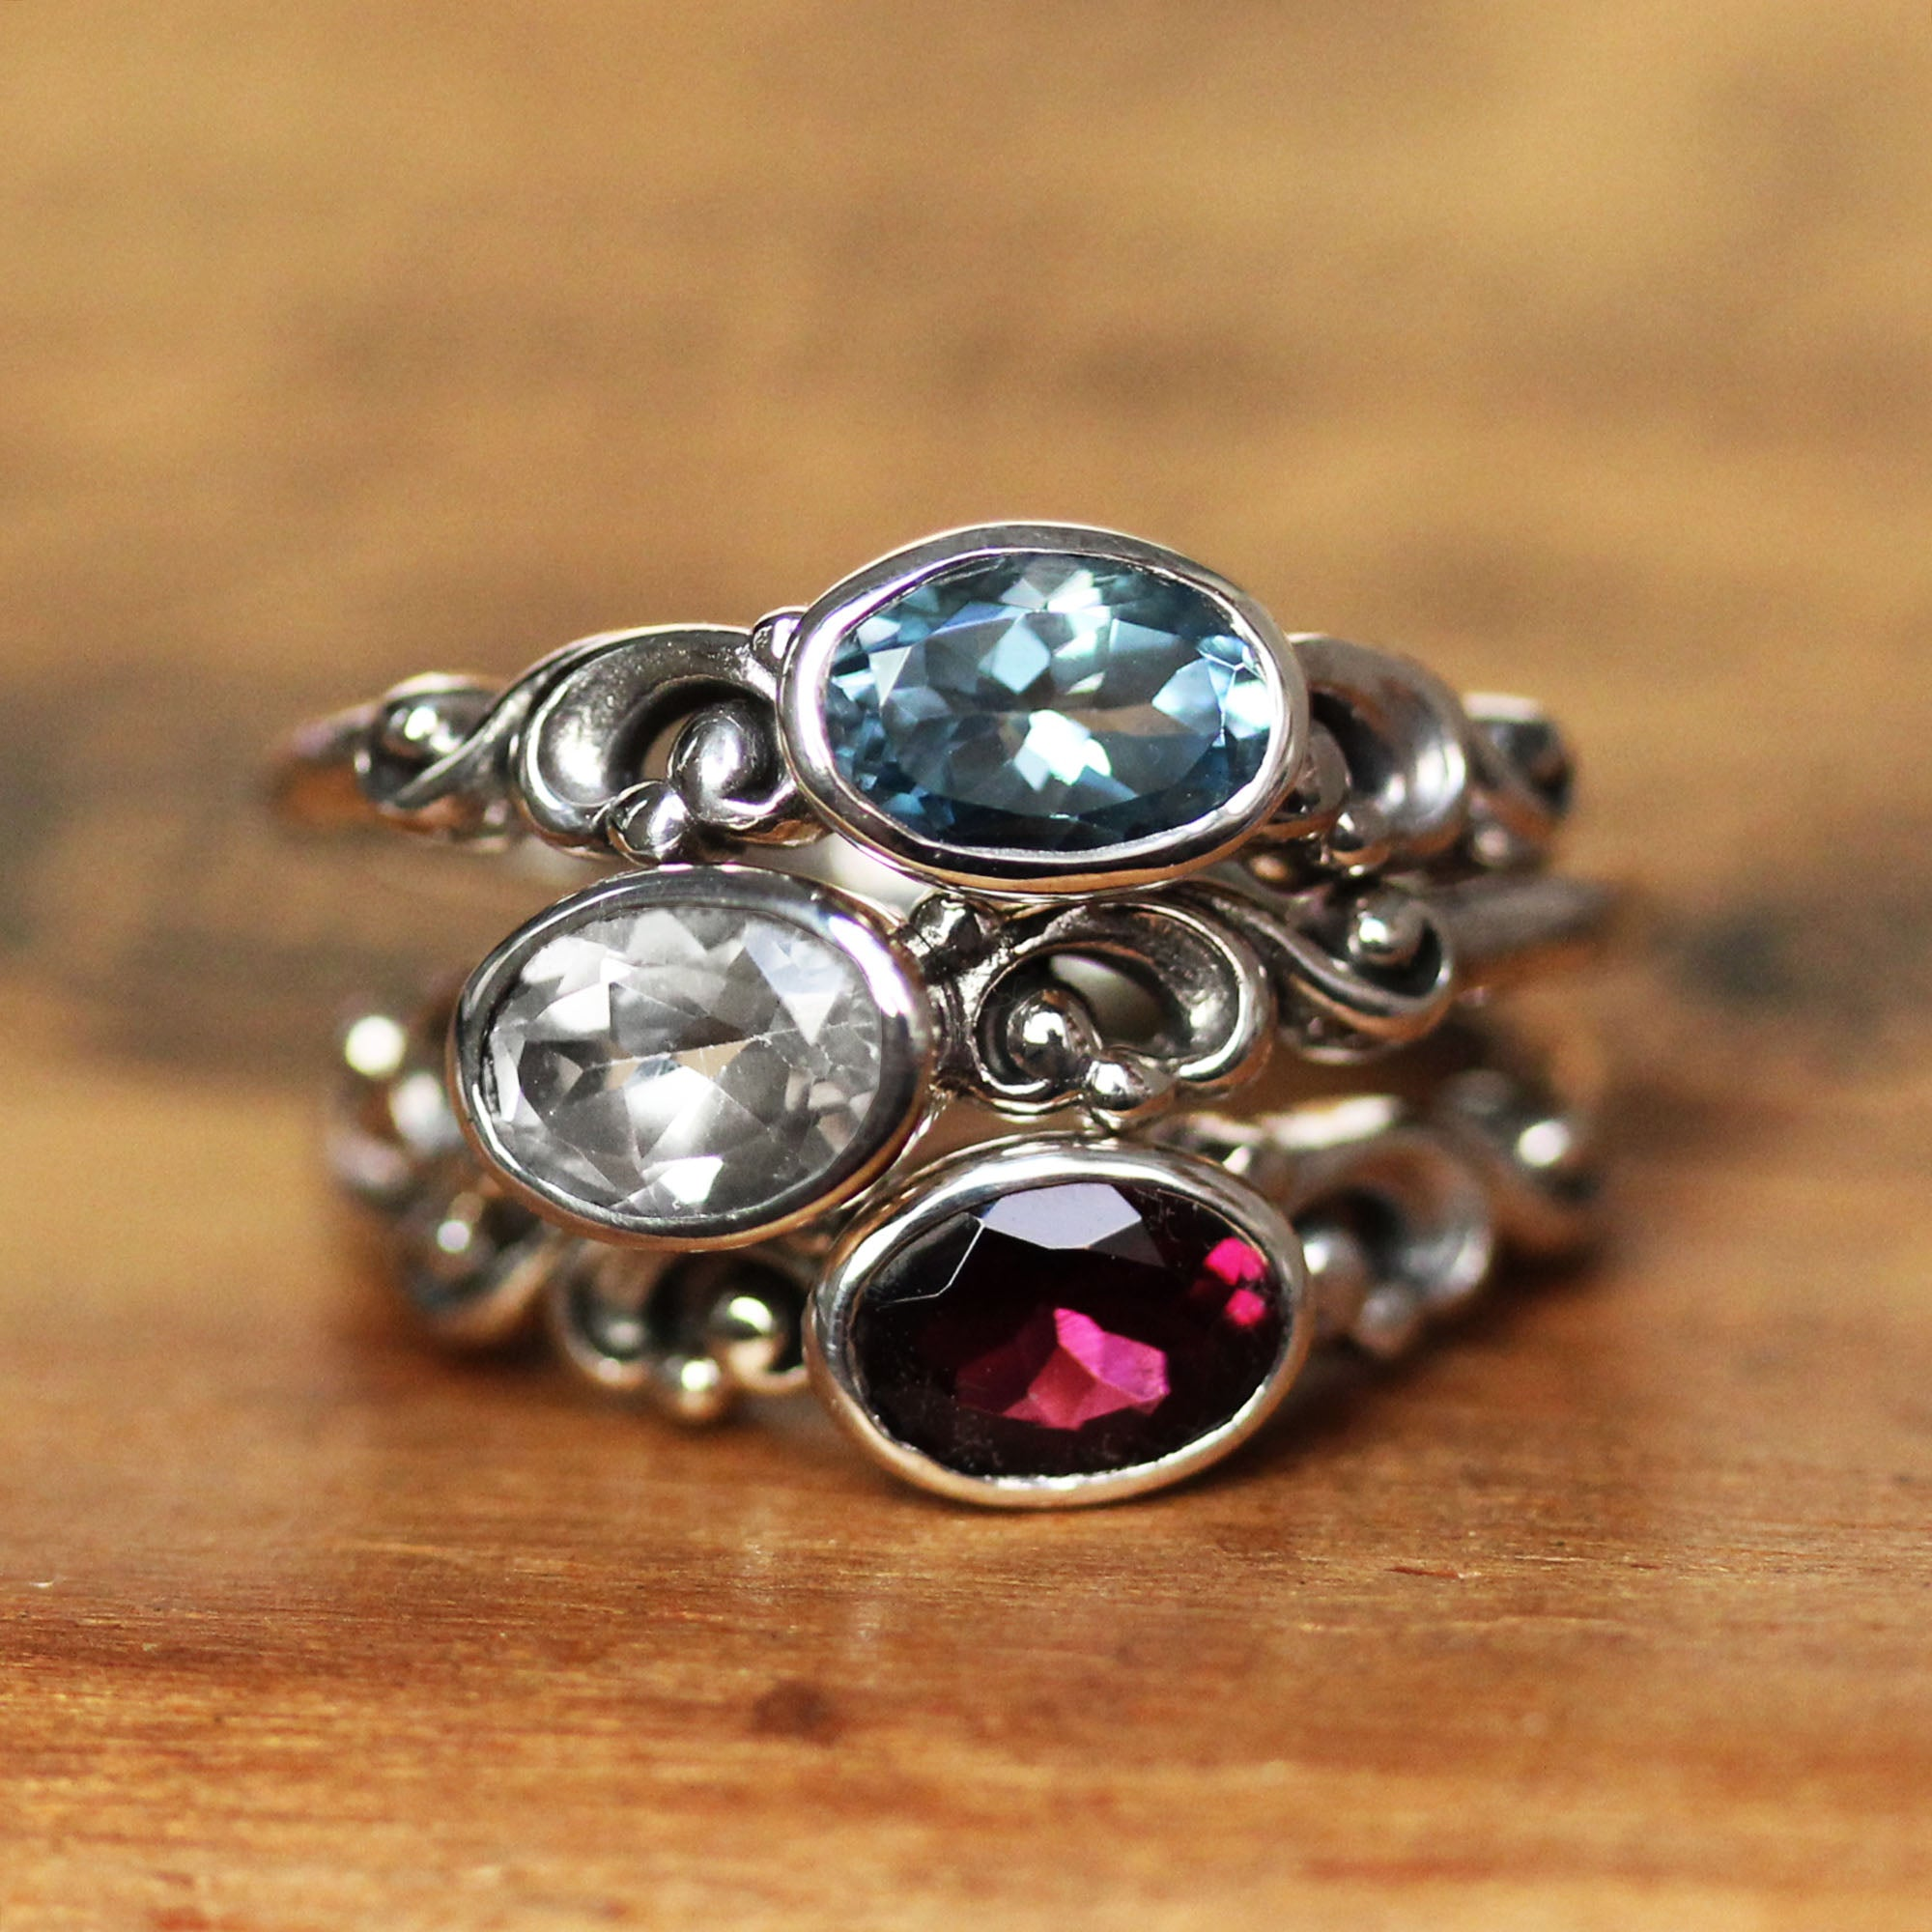 Rhodolite Garnet Oval Water Ring Sterling Silver, Water Dream